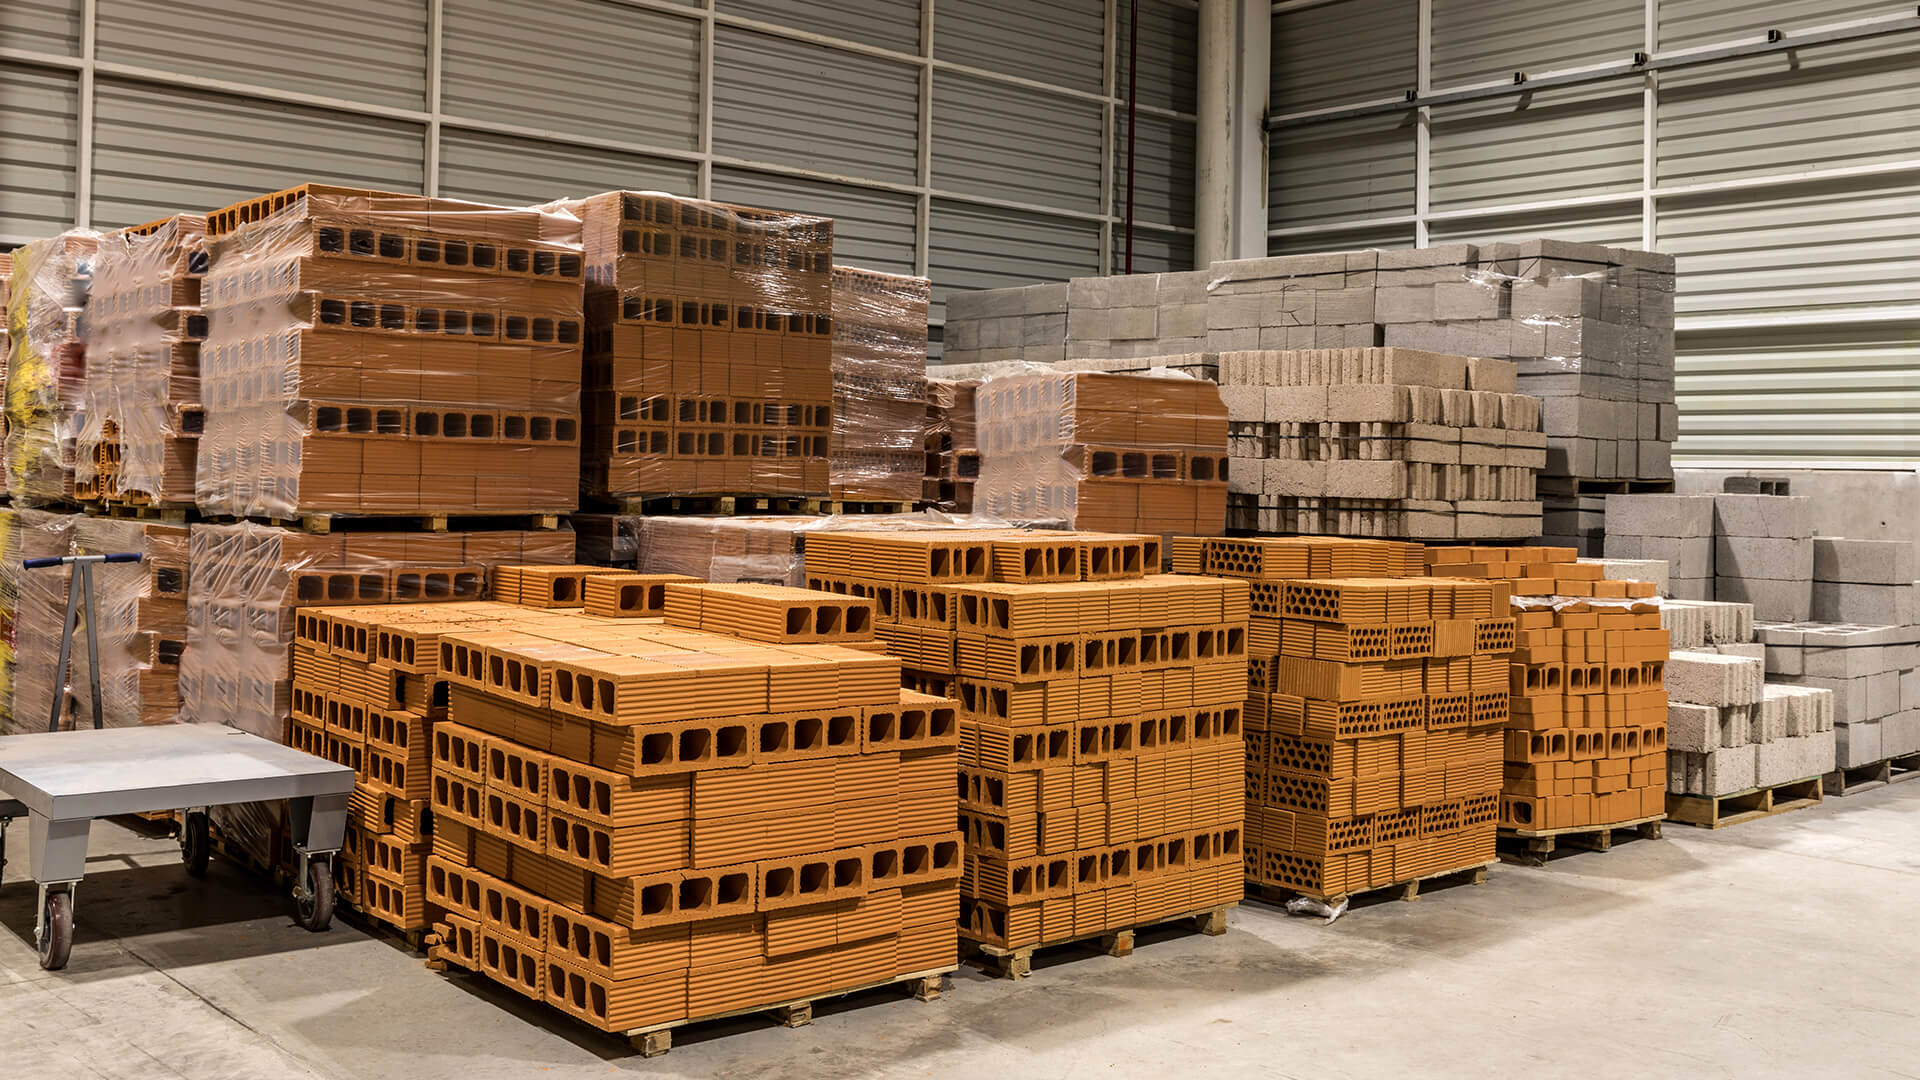 Crates of bricks in warehouse